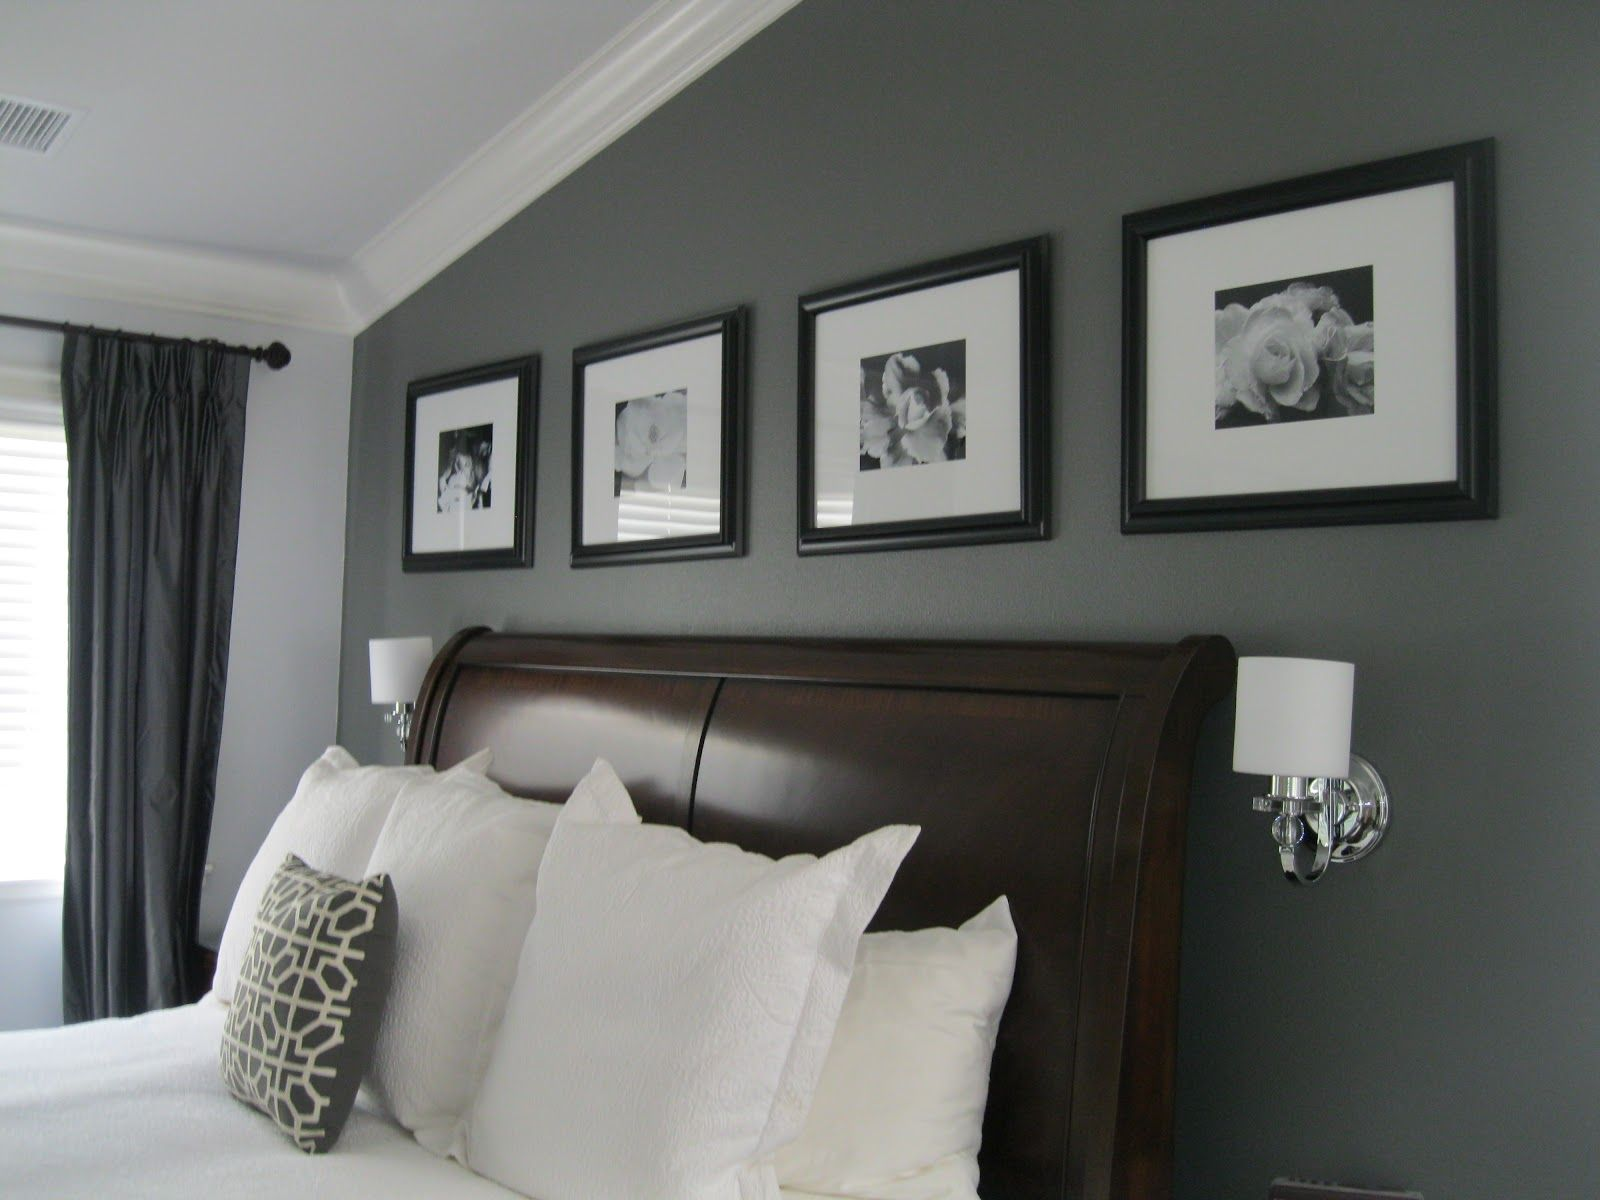 legendary gray - dunn edward. i like the grey accent wall with